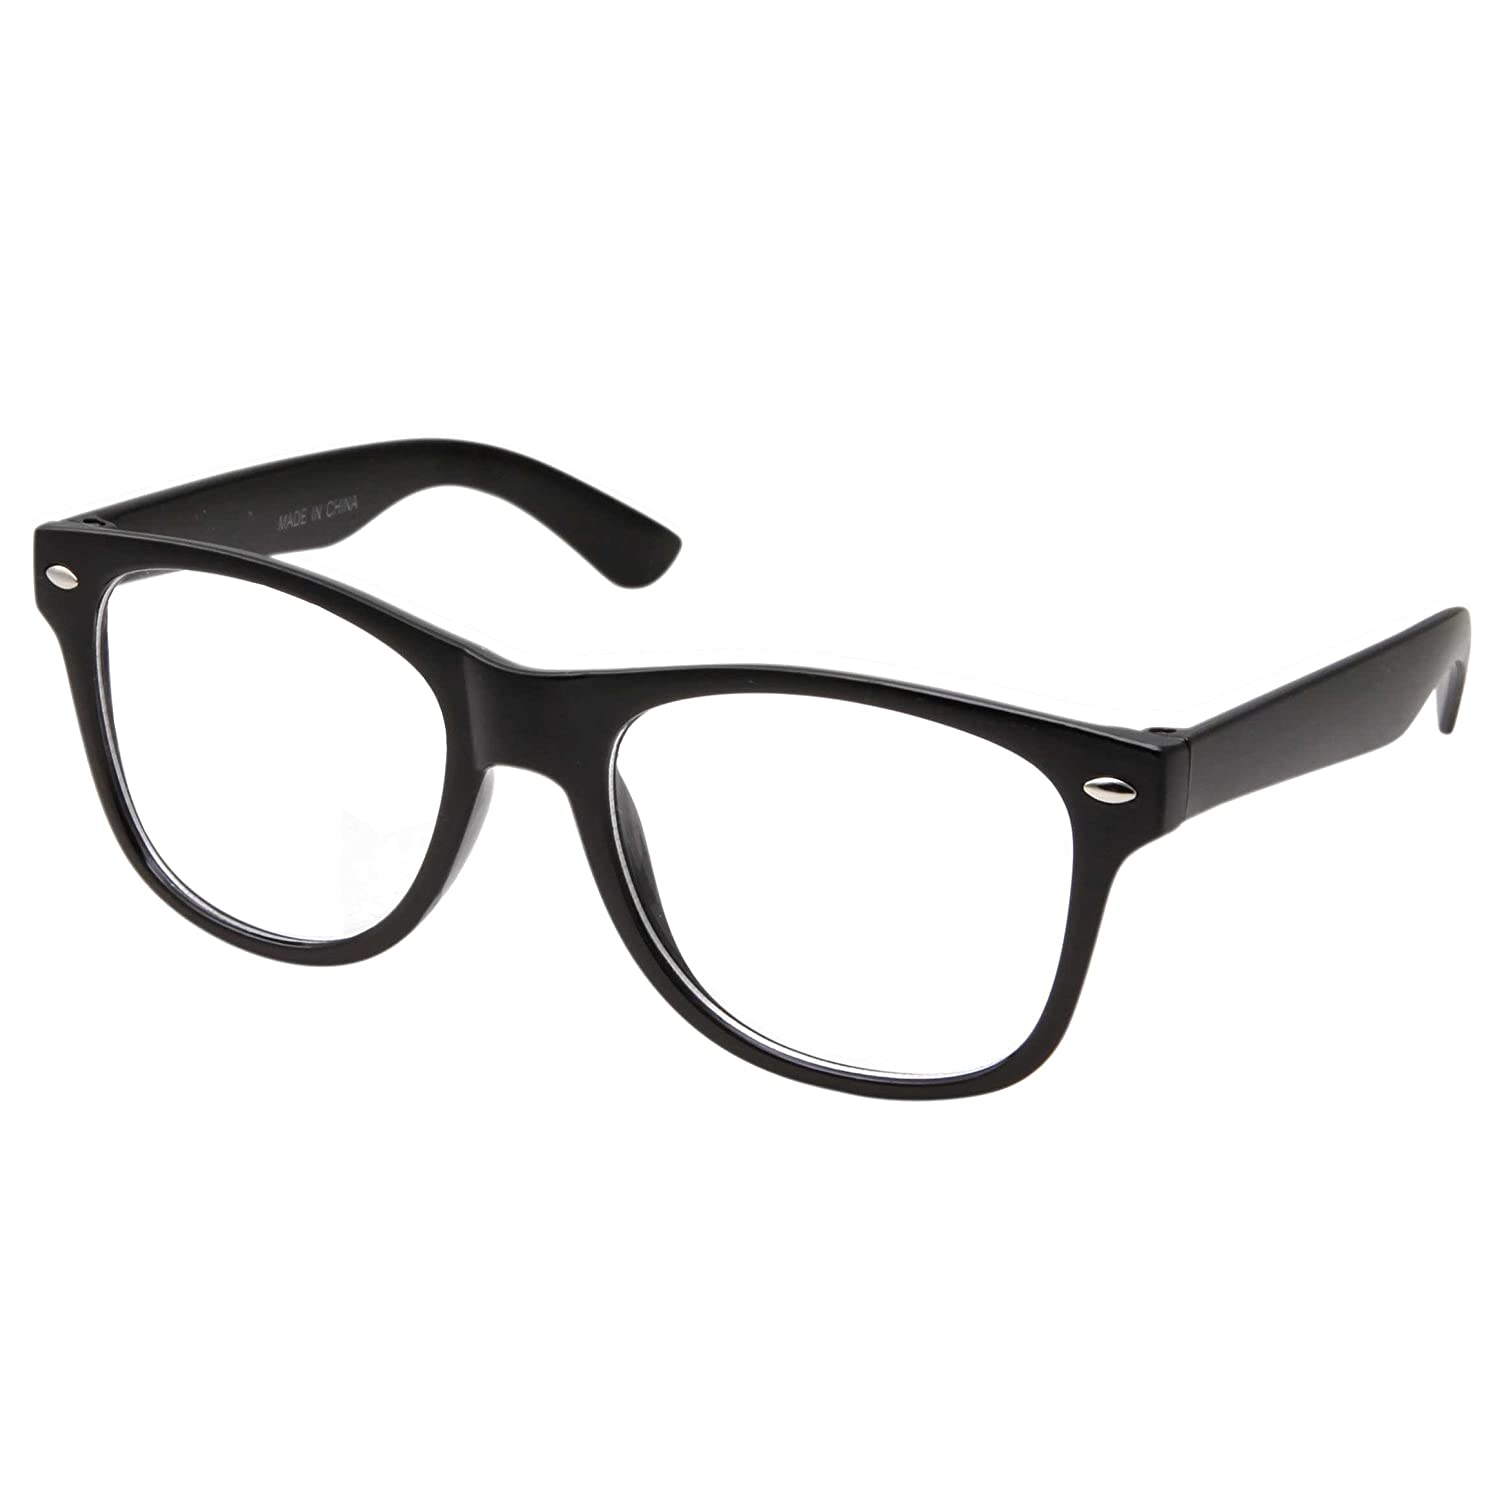 295fbd29890 Amazon.com  Retro NERD Geek Oversized BLACK Framed Clear Lens Eye Glasses  for Men Women  Clothing